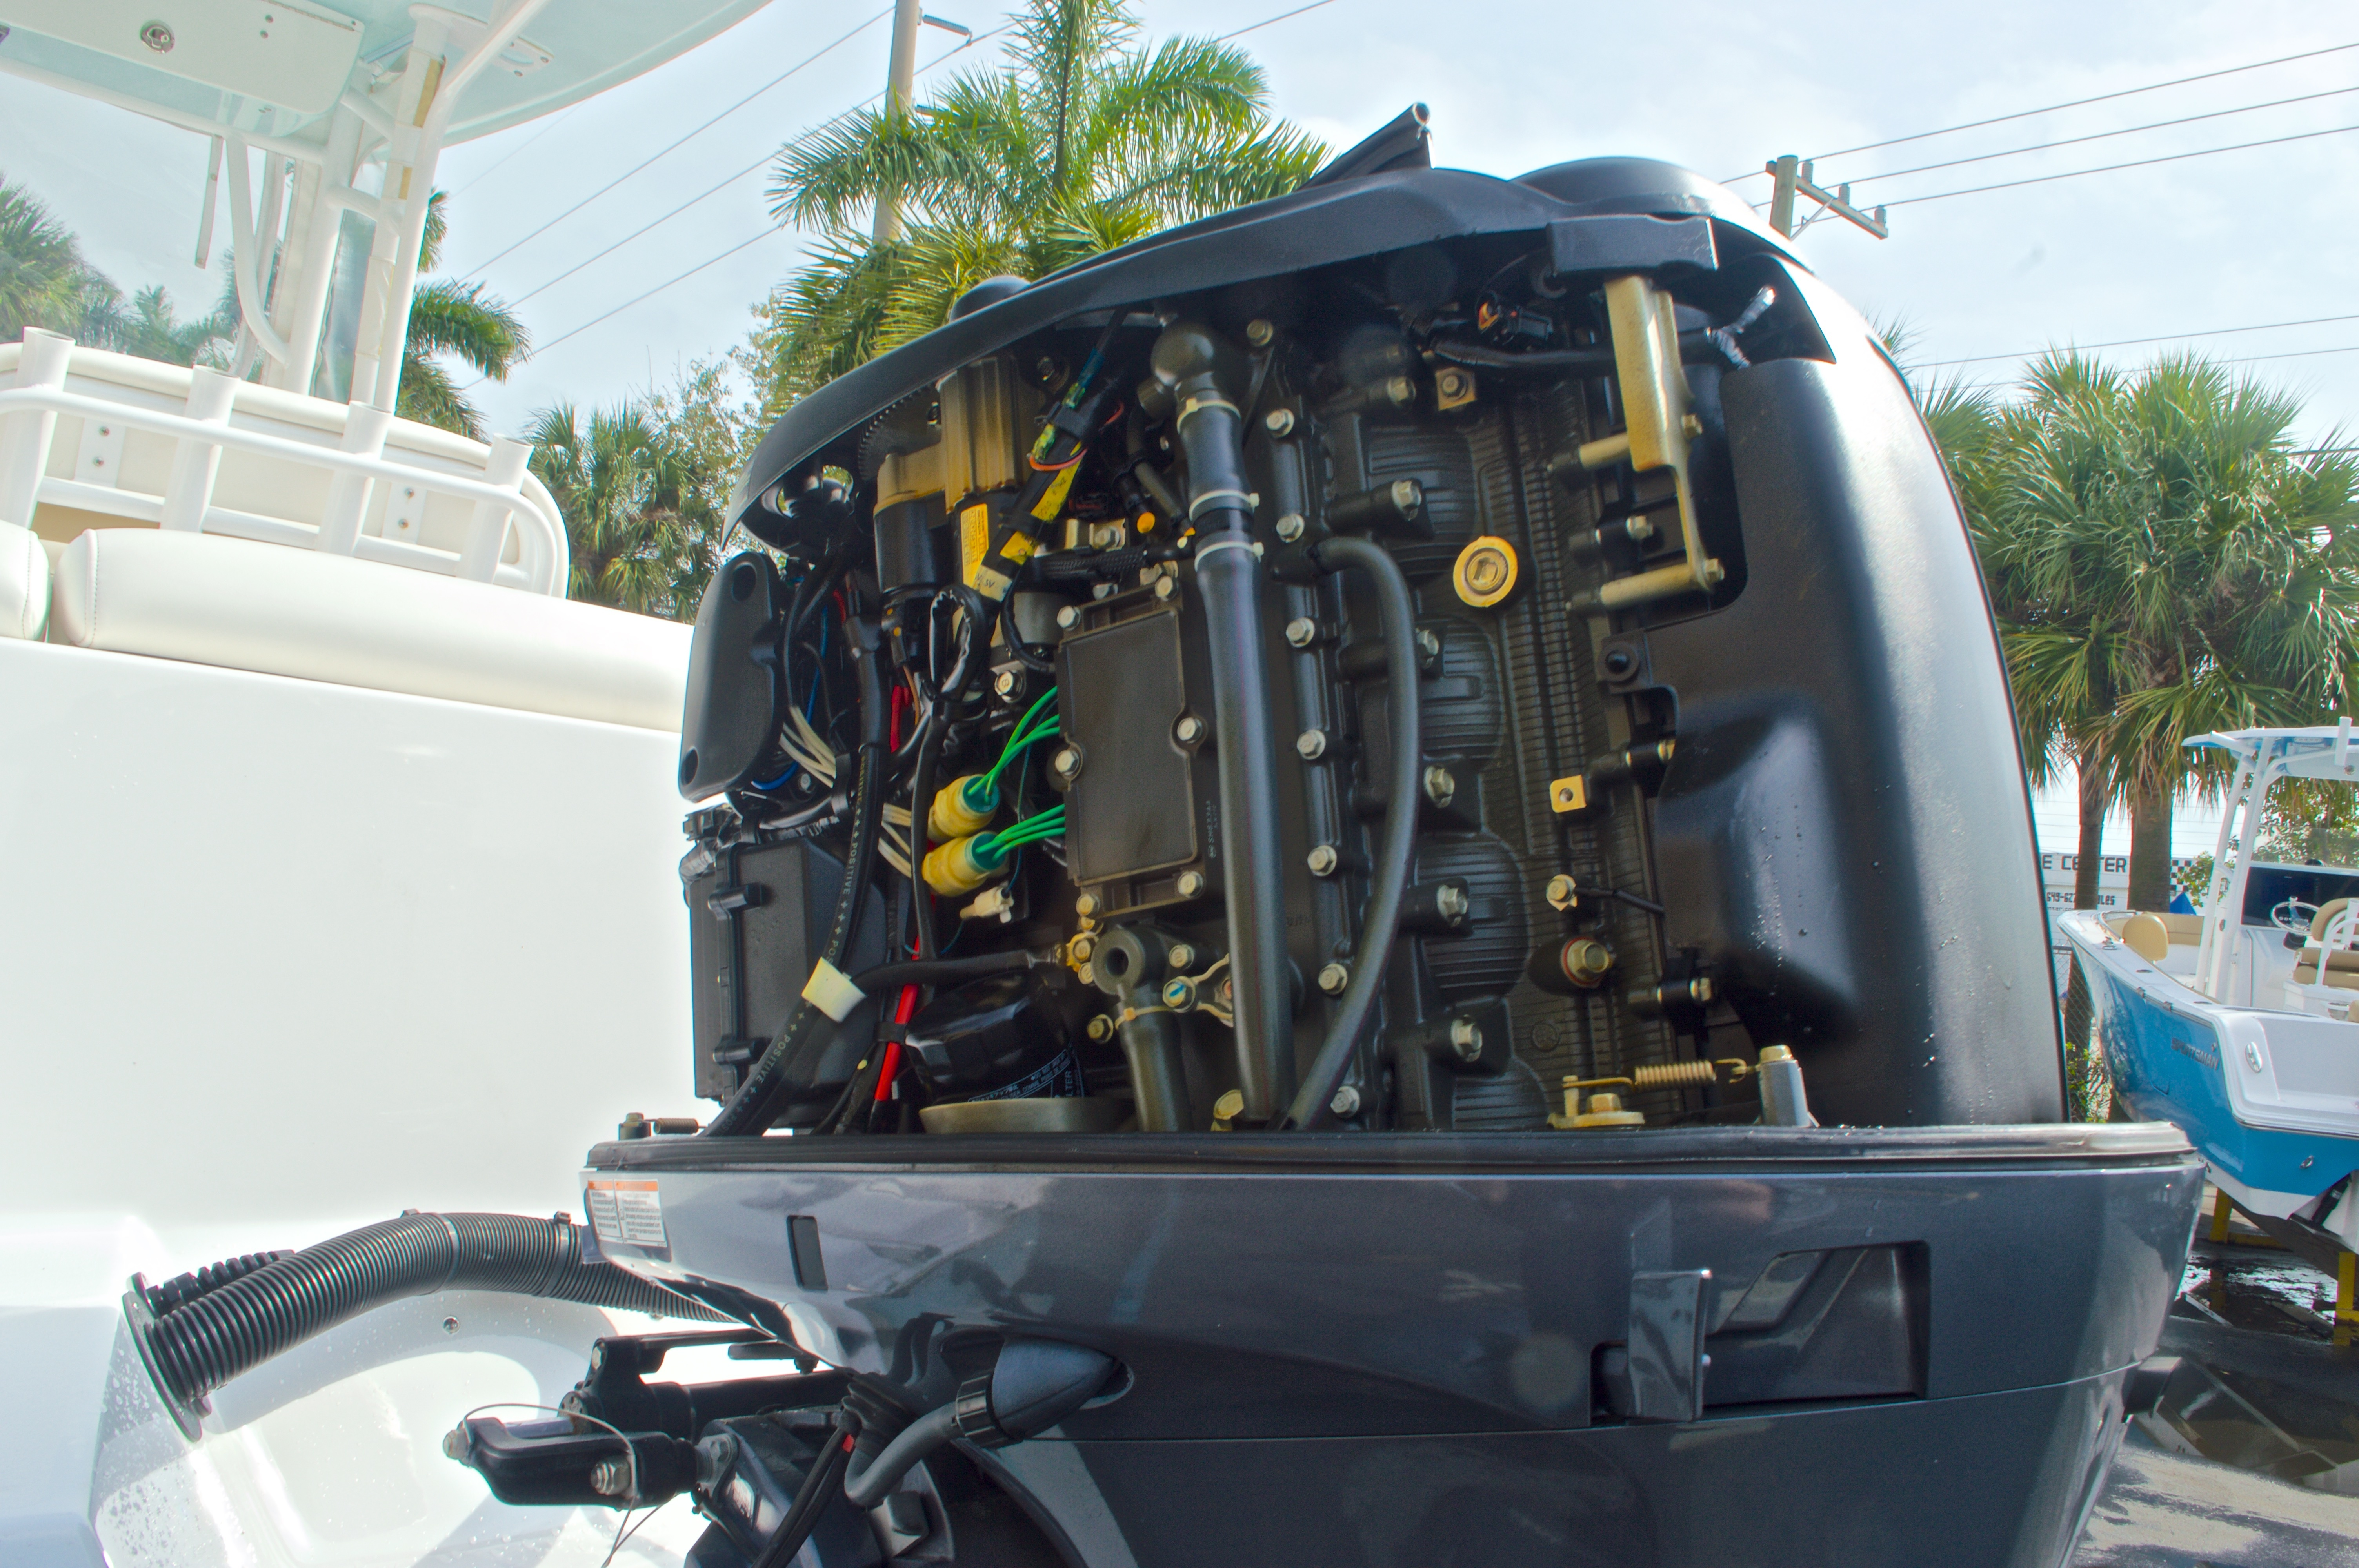 Thumbnail 12 for Used 2014 Sportsman Heritage 231 Center Console boat for sale in West Palm Beach, FL